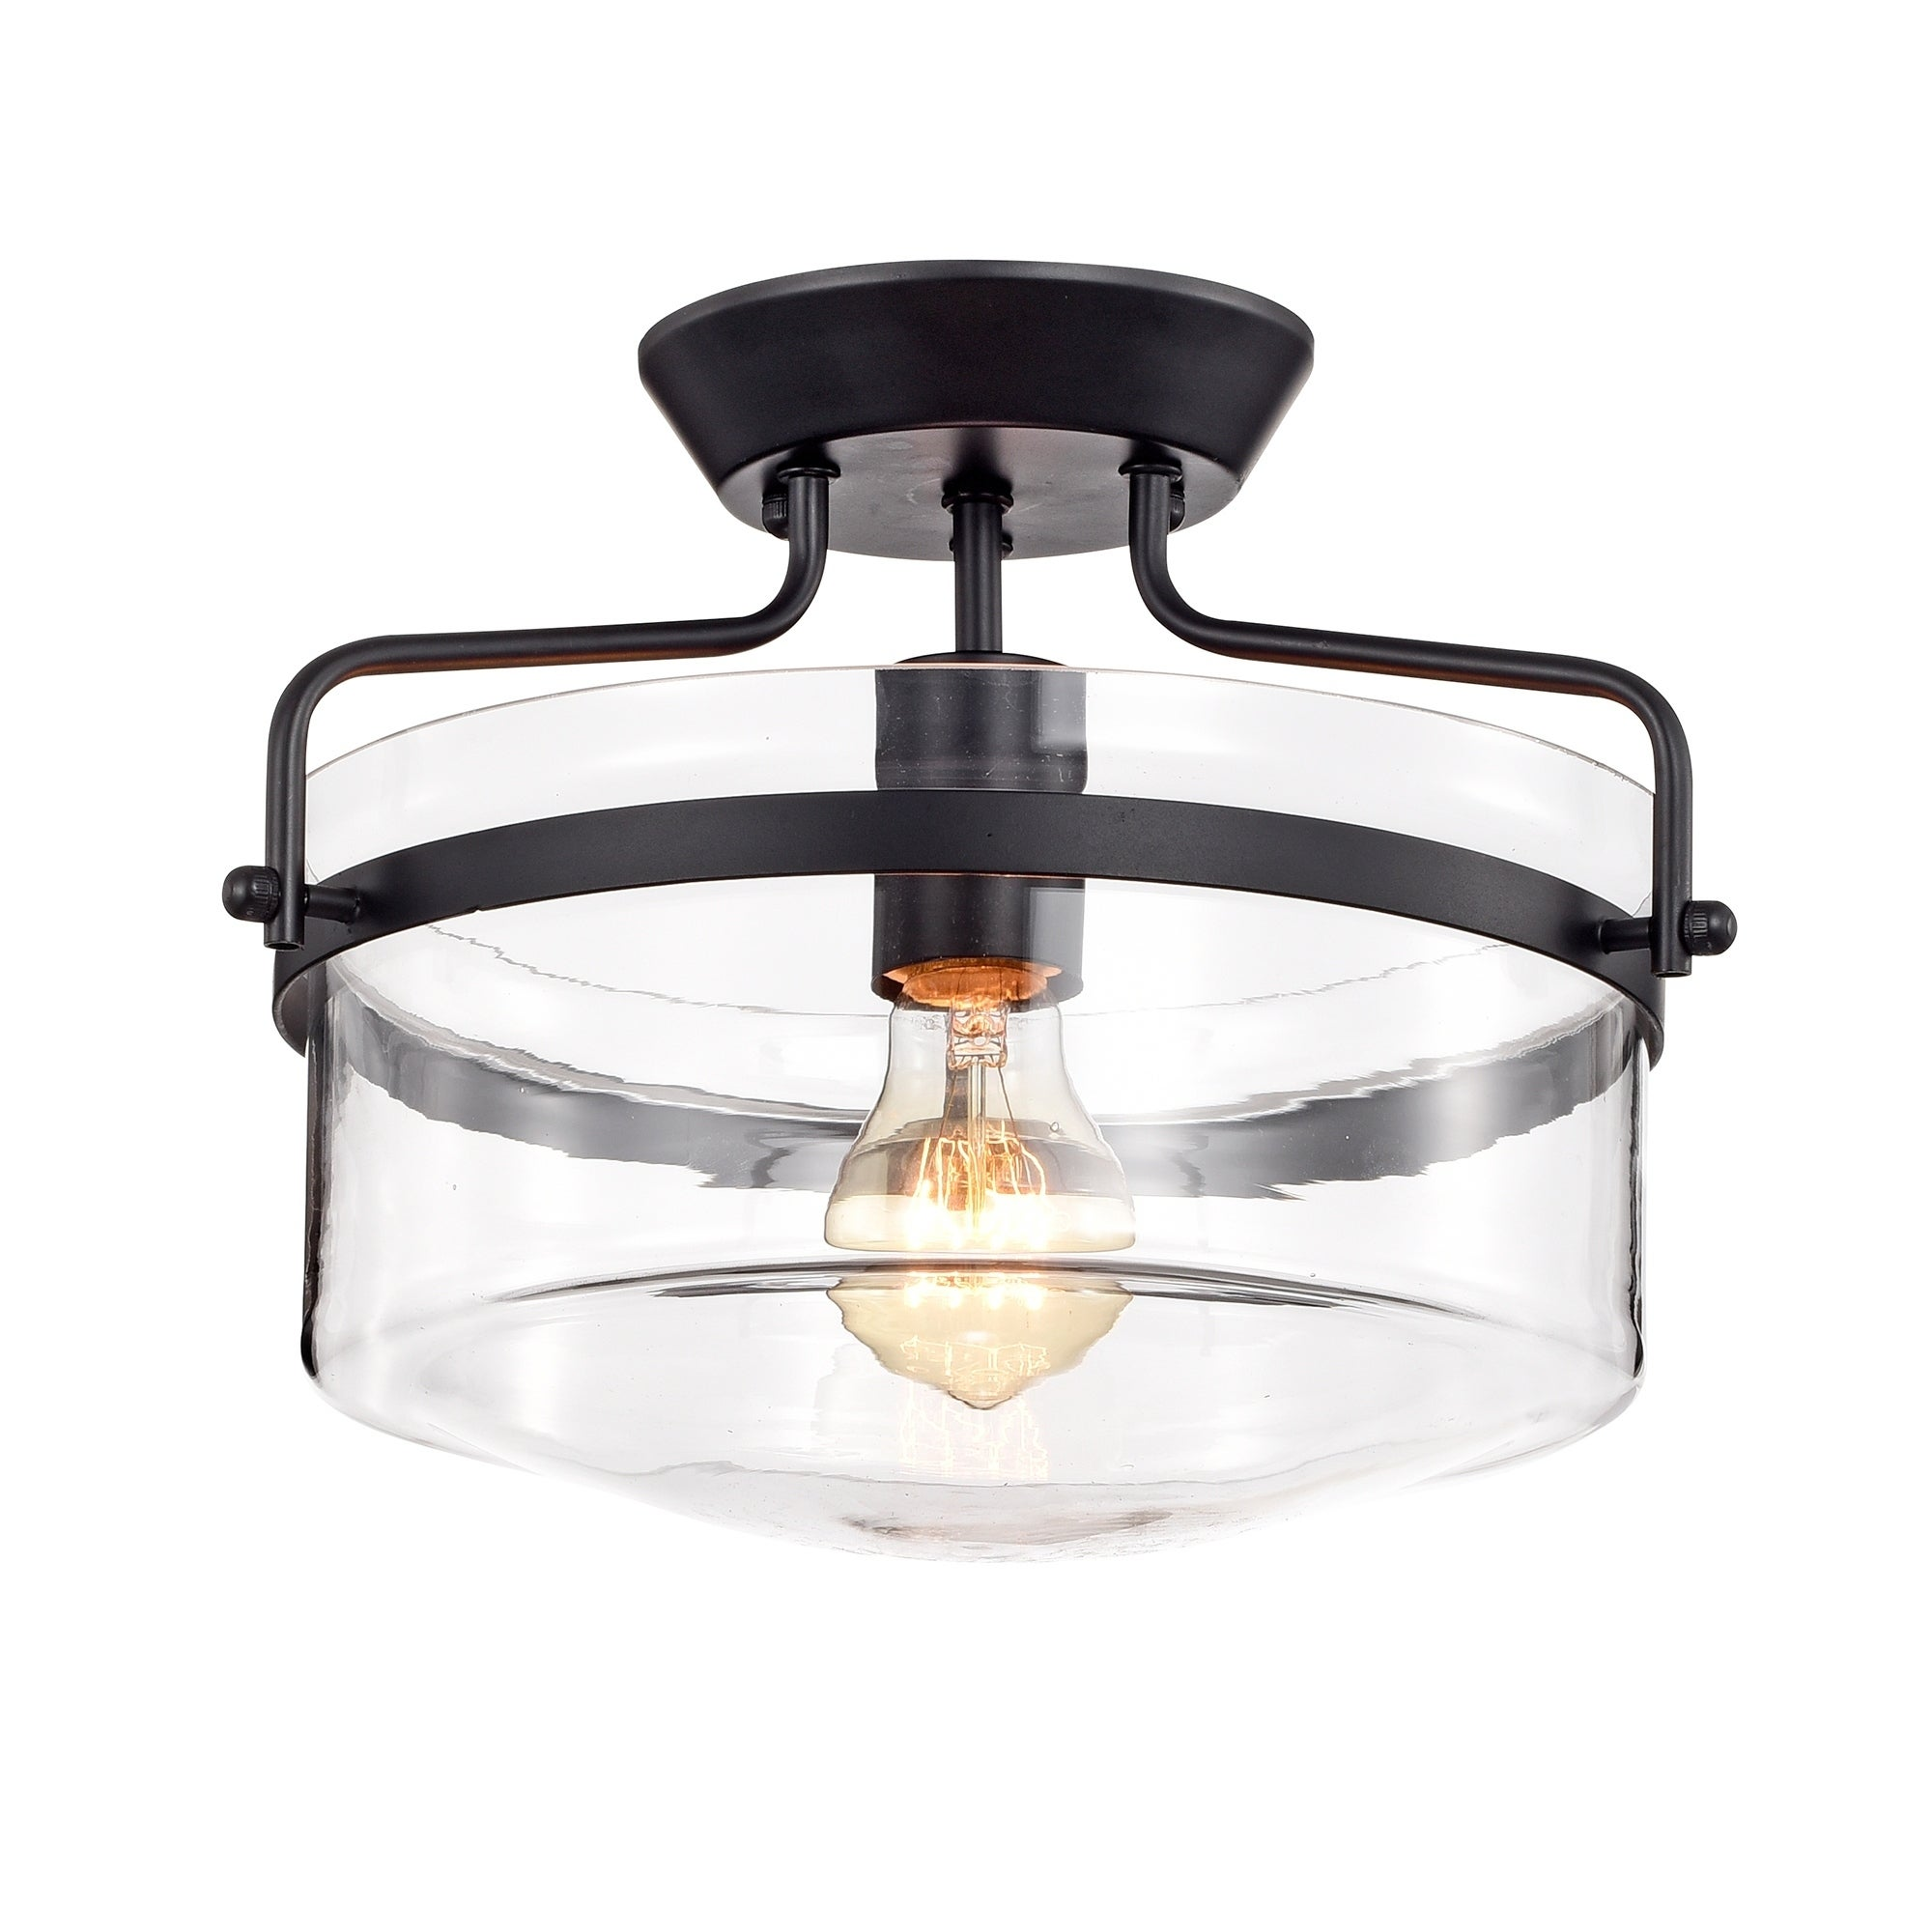 Shop merwin 1 light matte black semi flush ceiling lamp on sale free shipping today overstock 20752035